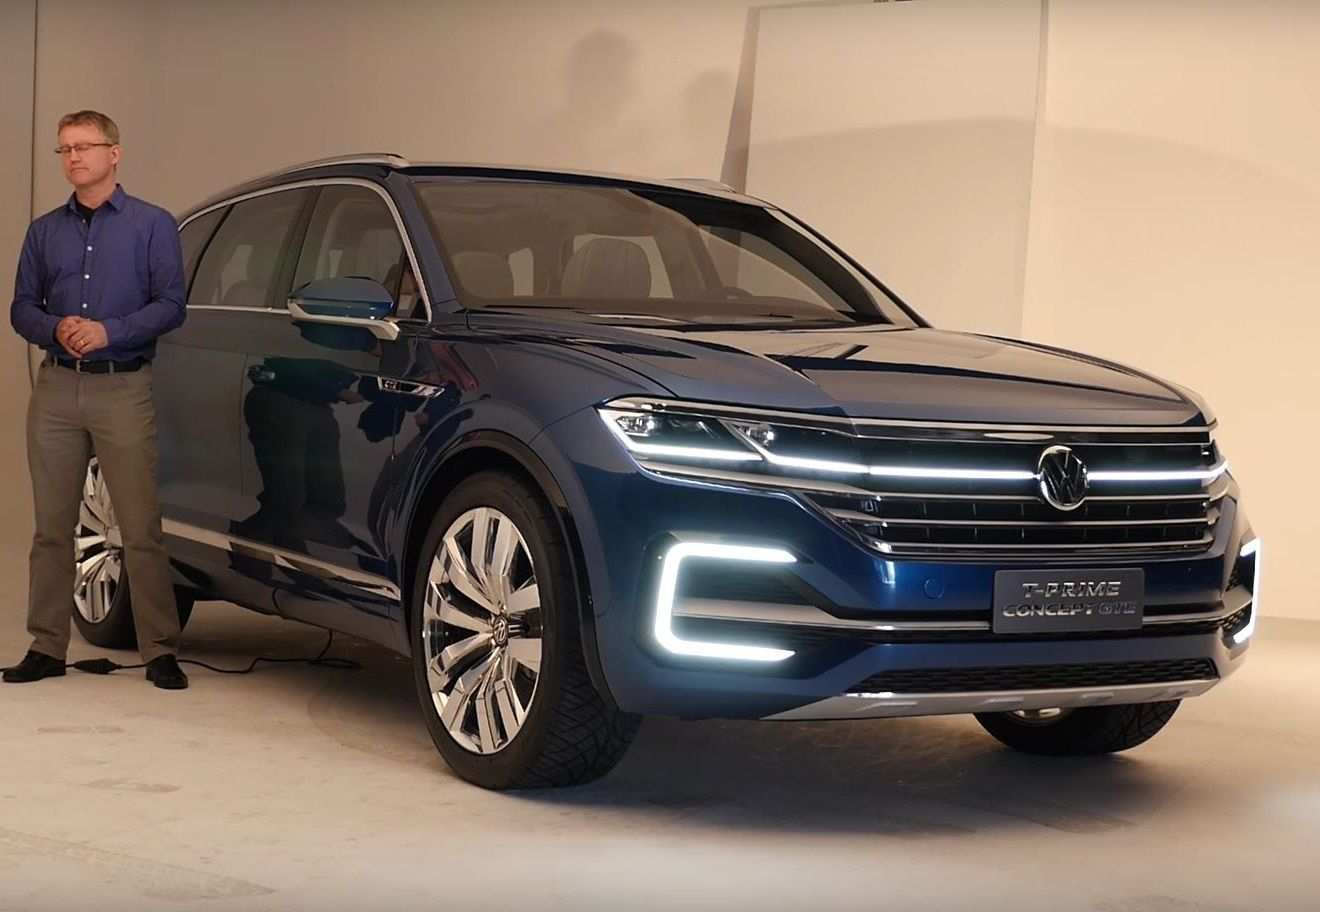 48 All New VW Touareg 2020 Canada Configurations with VW Touareg 2020 Canada